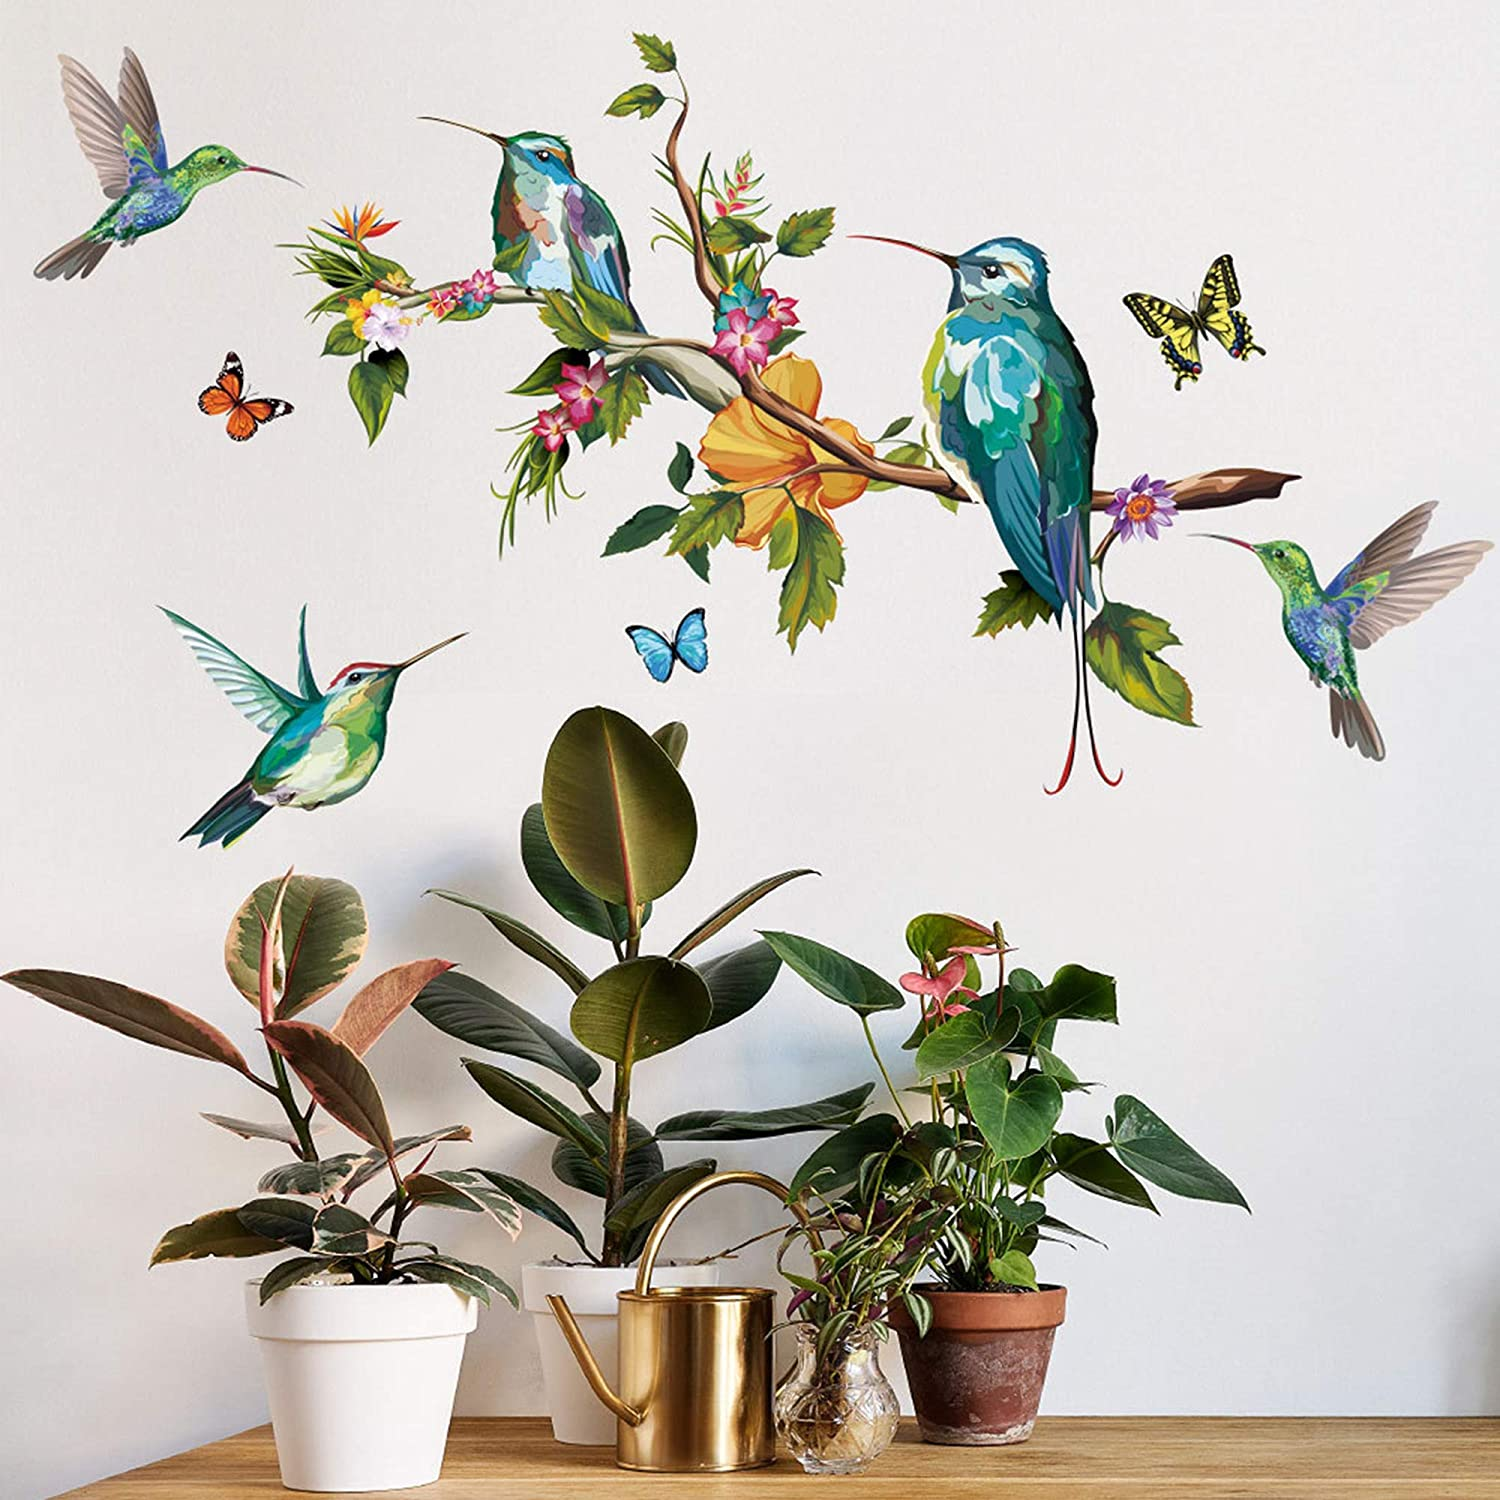 ROFARSO Hummingbird Plants Animals Beautiful Birds Flowers Butterfly Colorful Vinyl Wall Stickers Removable Wall Decals Art Decorations Decor for Bedroom Living Room Murals